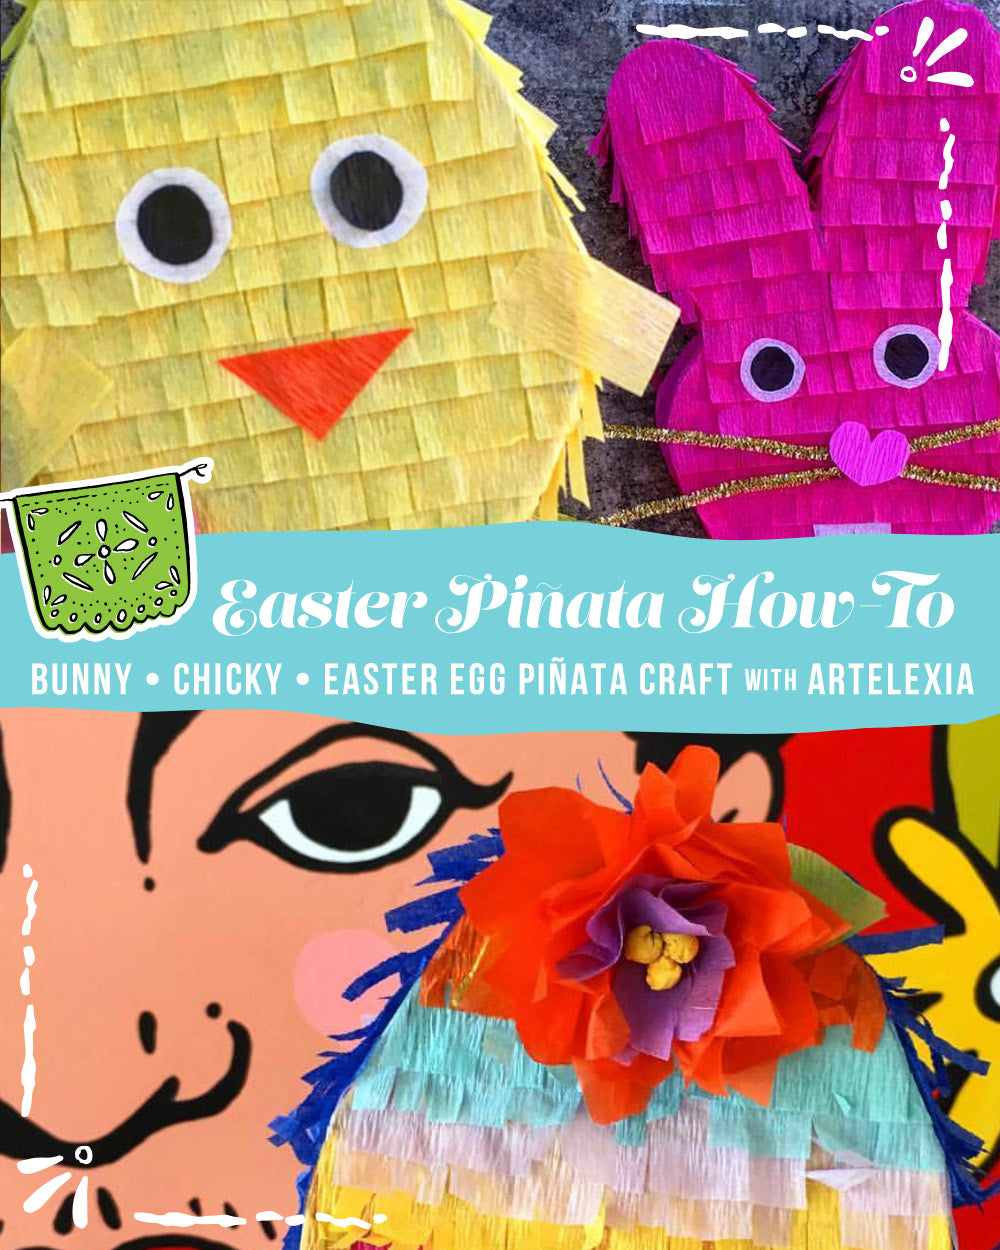 Rabbit, Easter Egg, Chicky Piñata Craft How-to by Artelexia